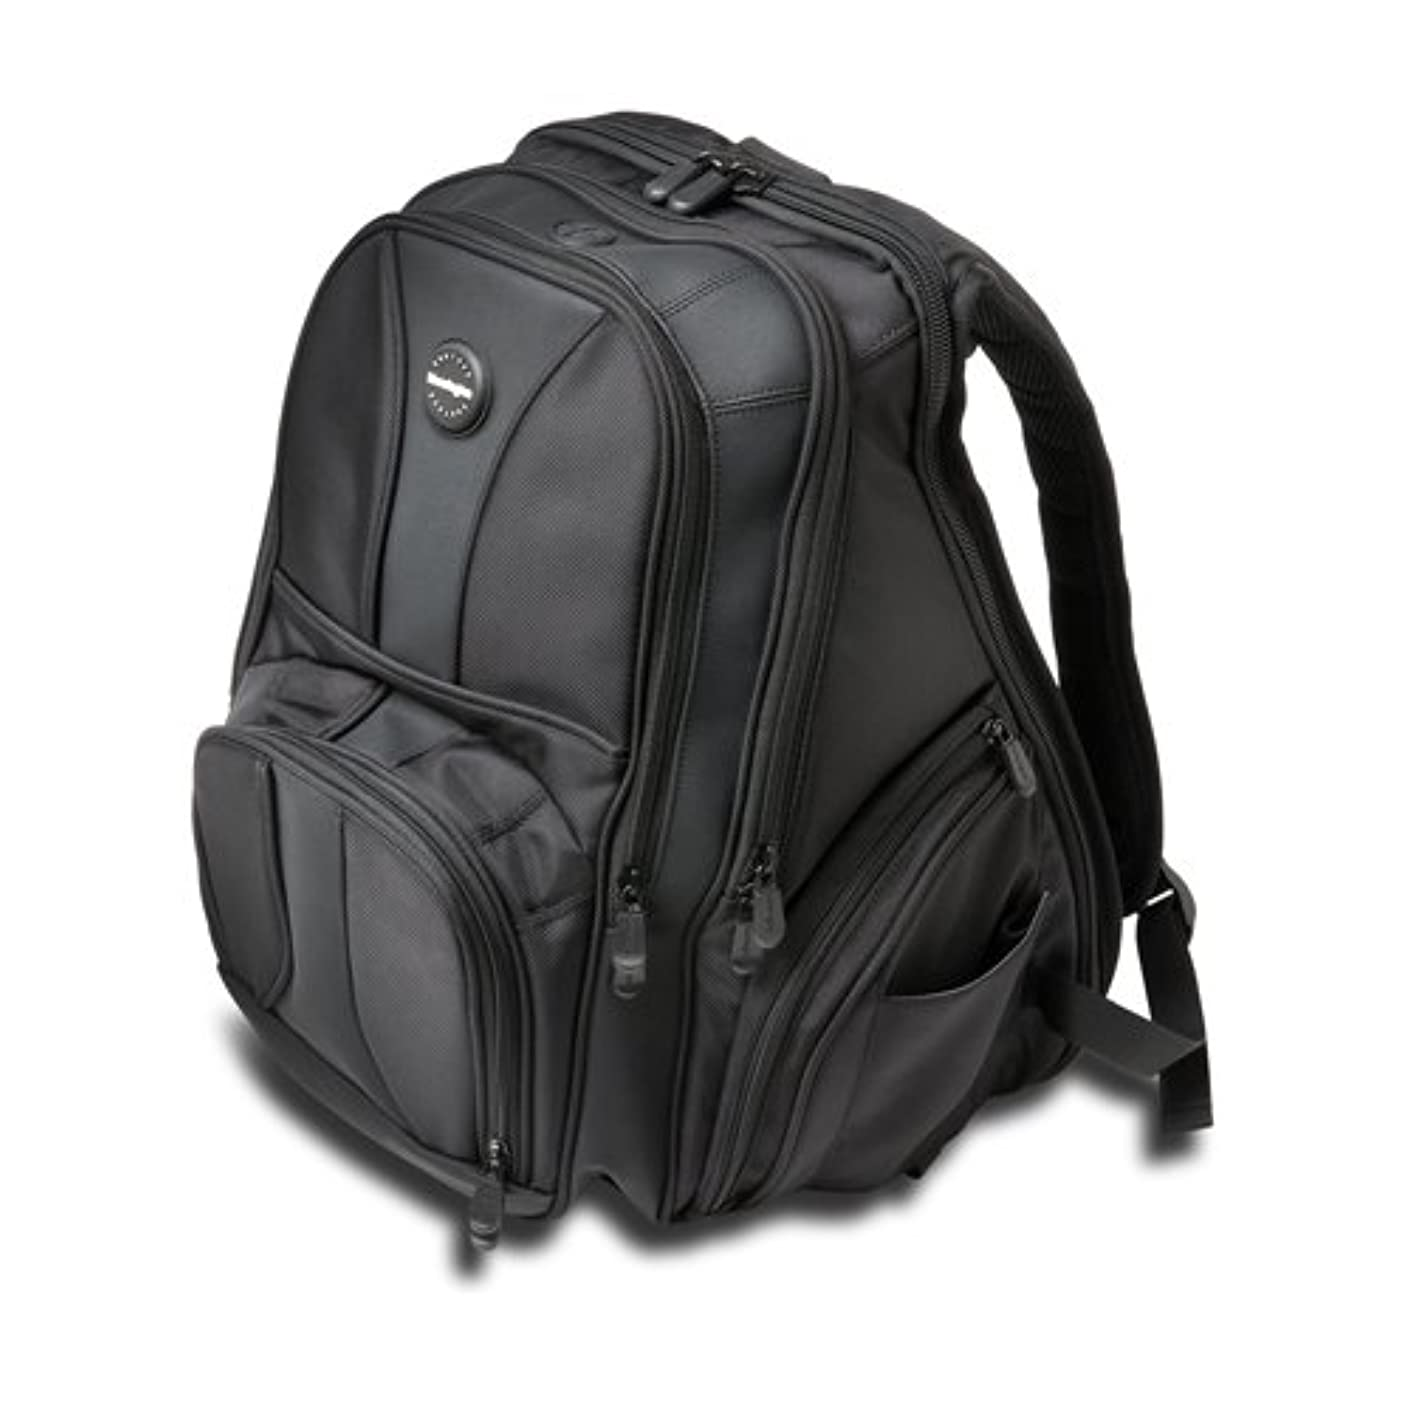 Kensington Contour Overnight TSA Checkpoint-Friendly Backpack and Laptop Case for 15.6-Inch Laptops (K62594AM)